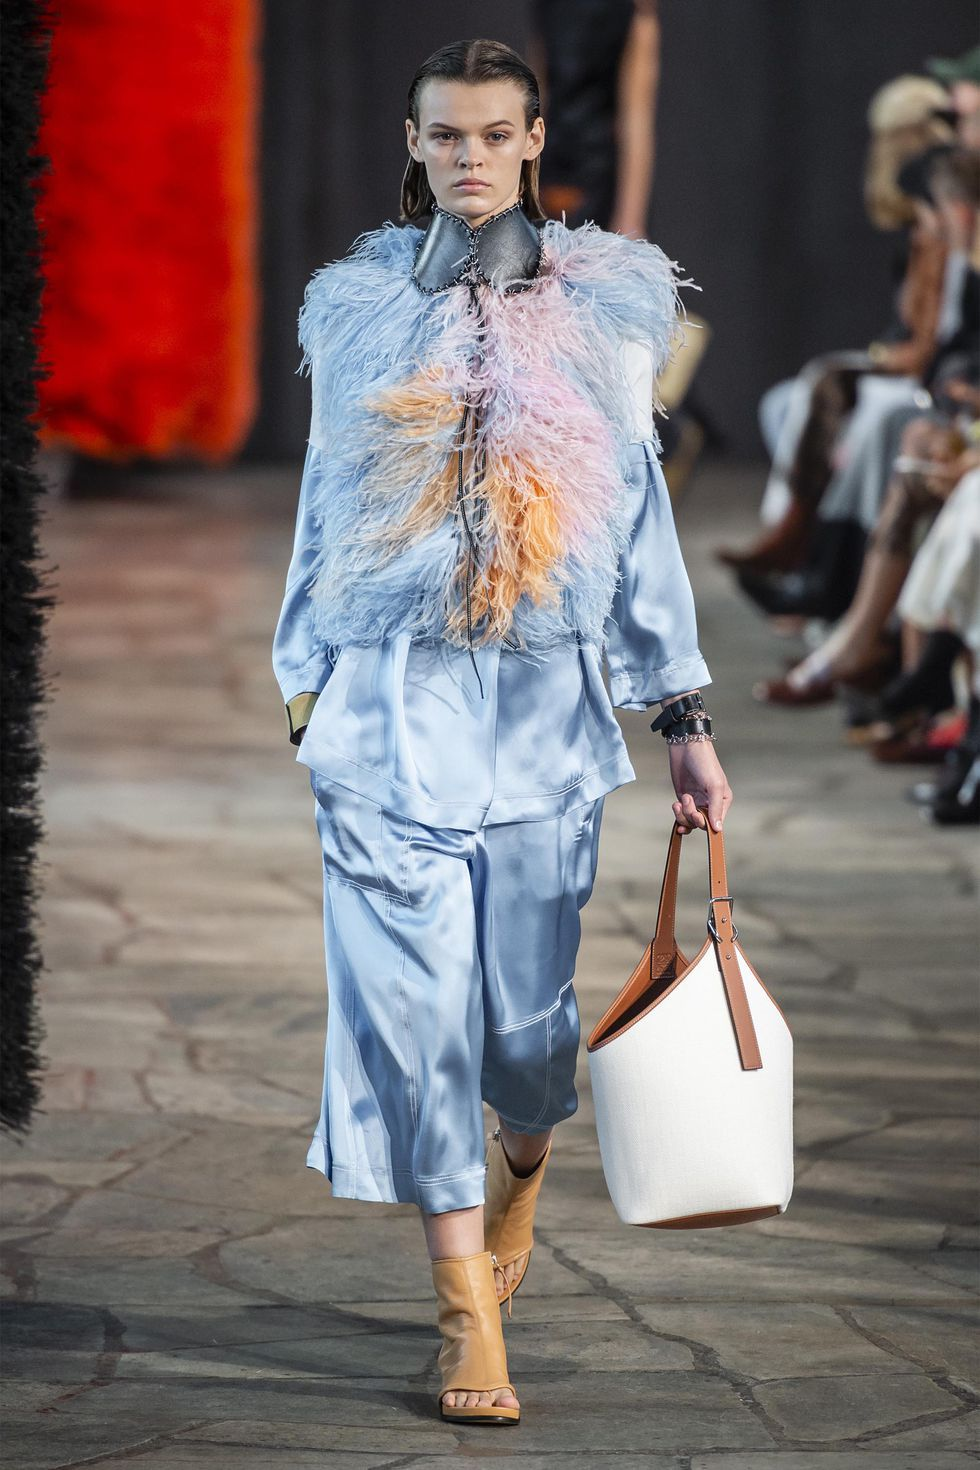 7 can't missed trends from fashion week 2019